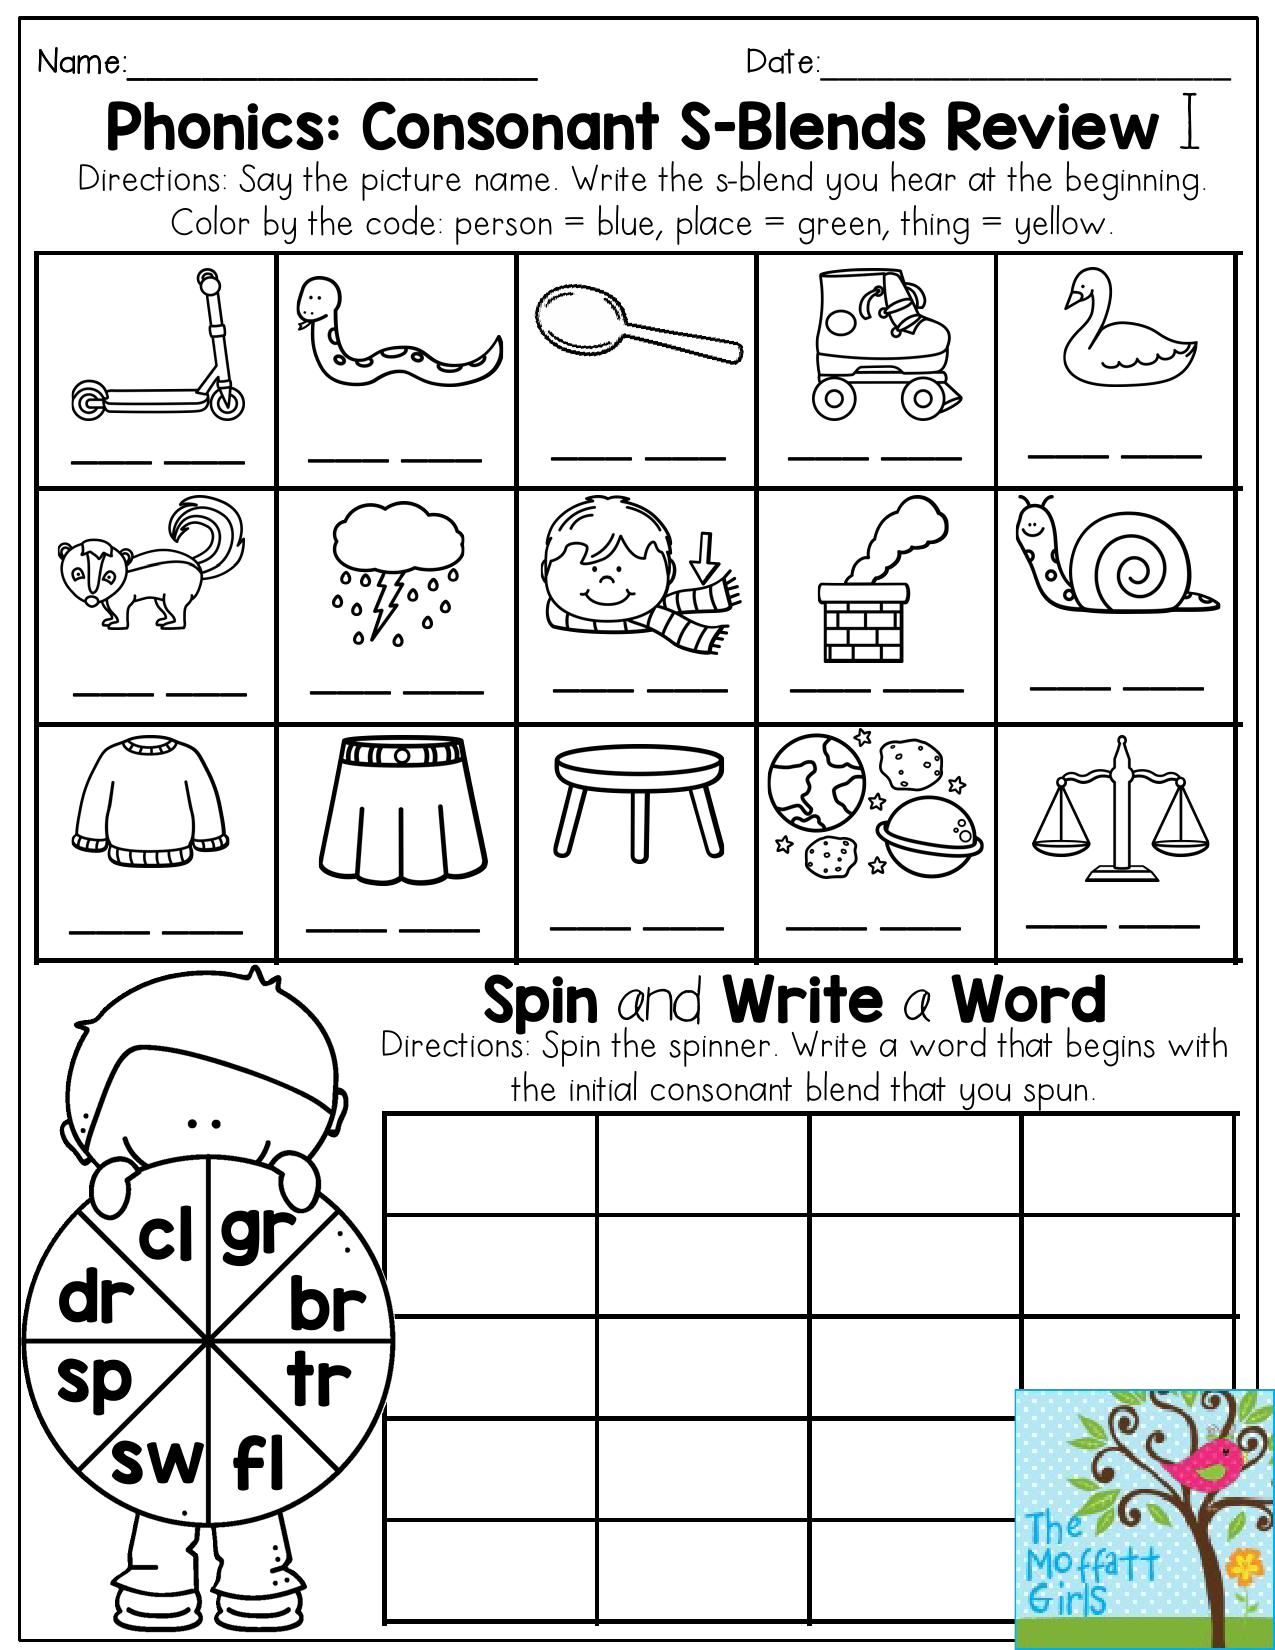 Phonics: Consonant S-Blends Review. Write the s-blend that you hear ...